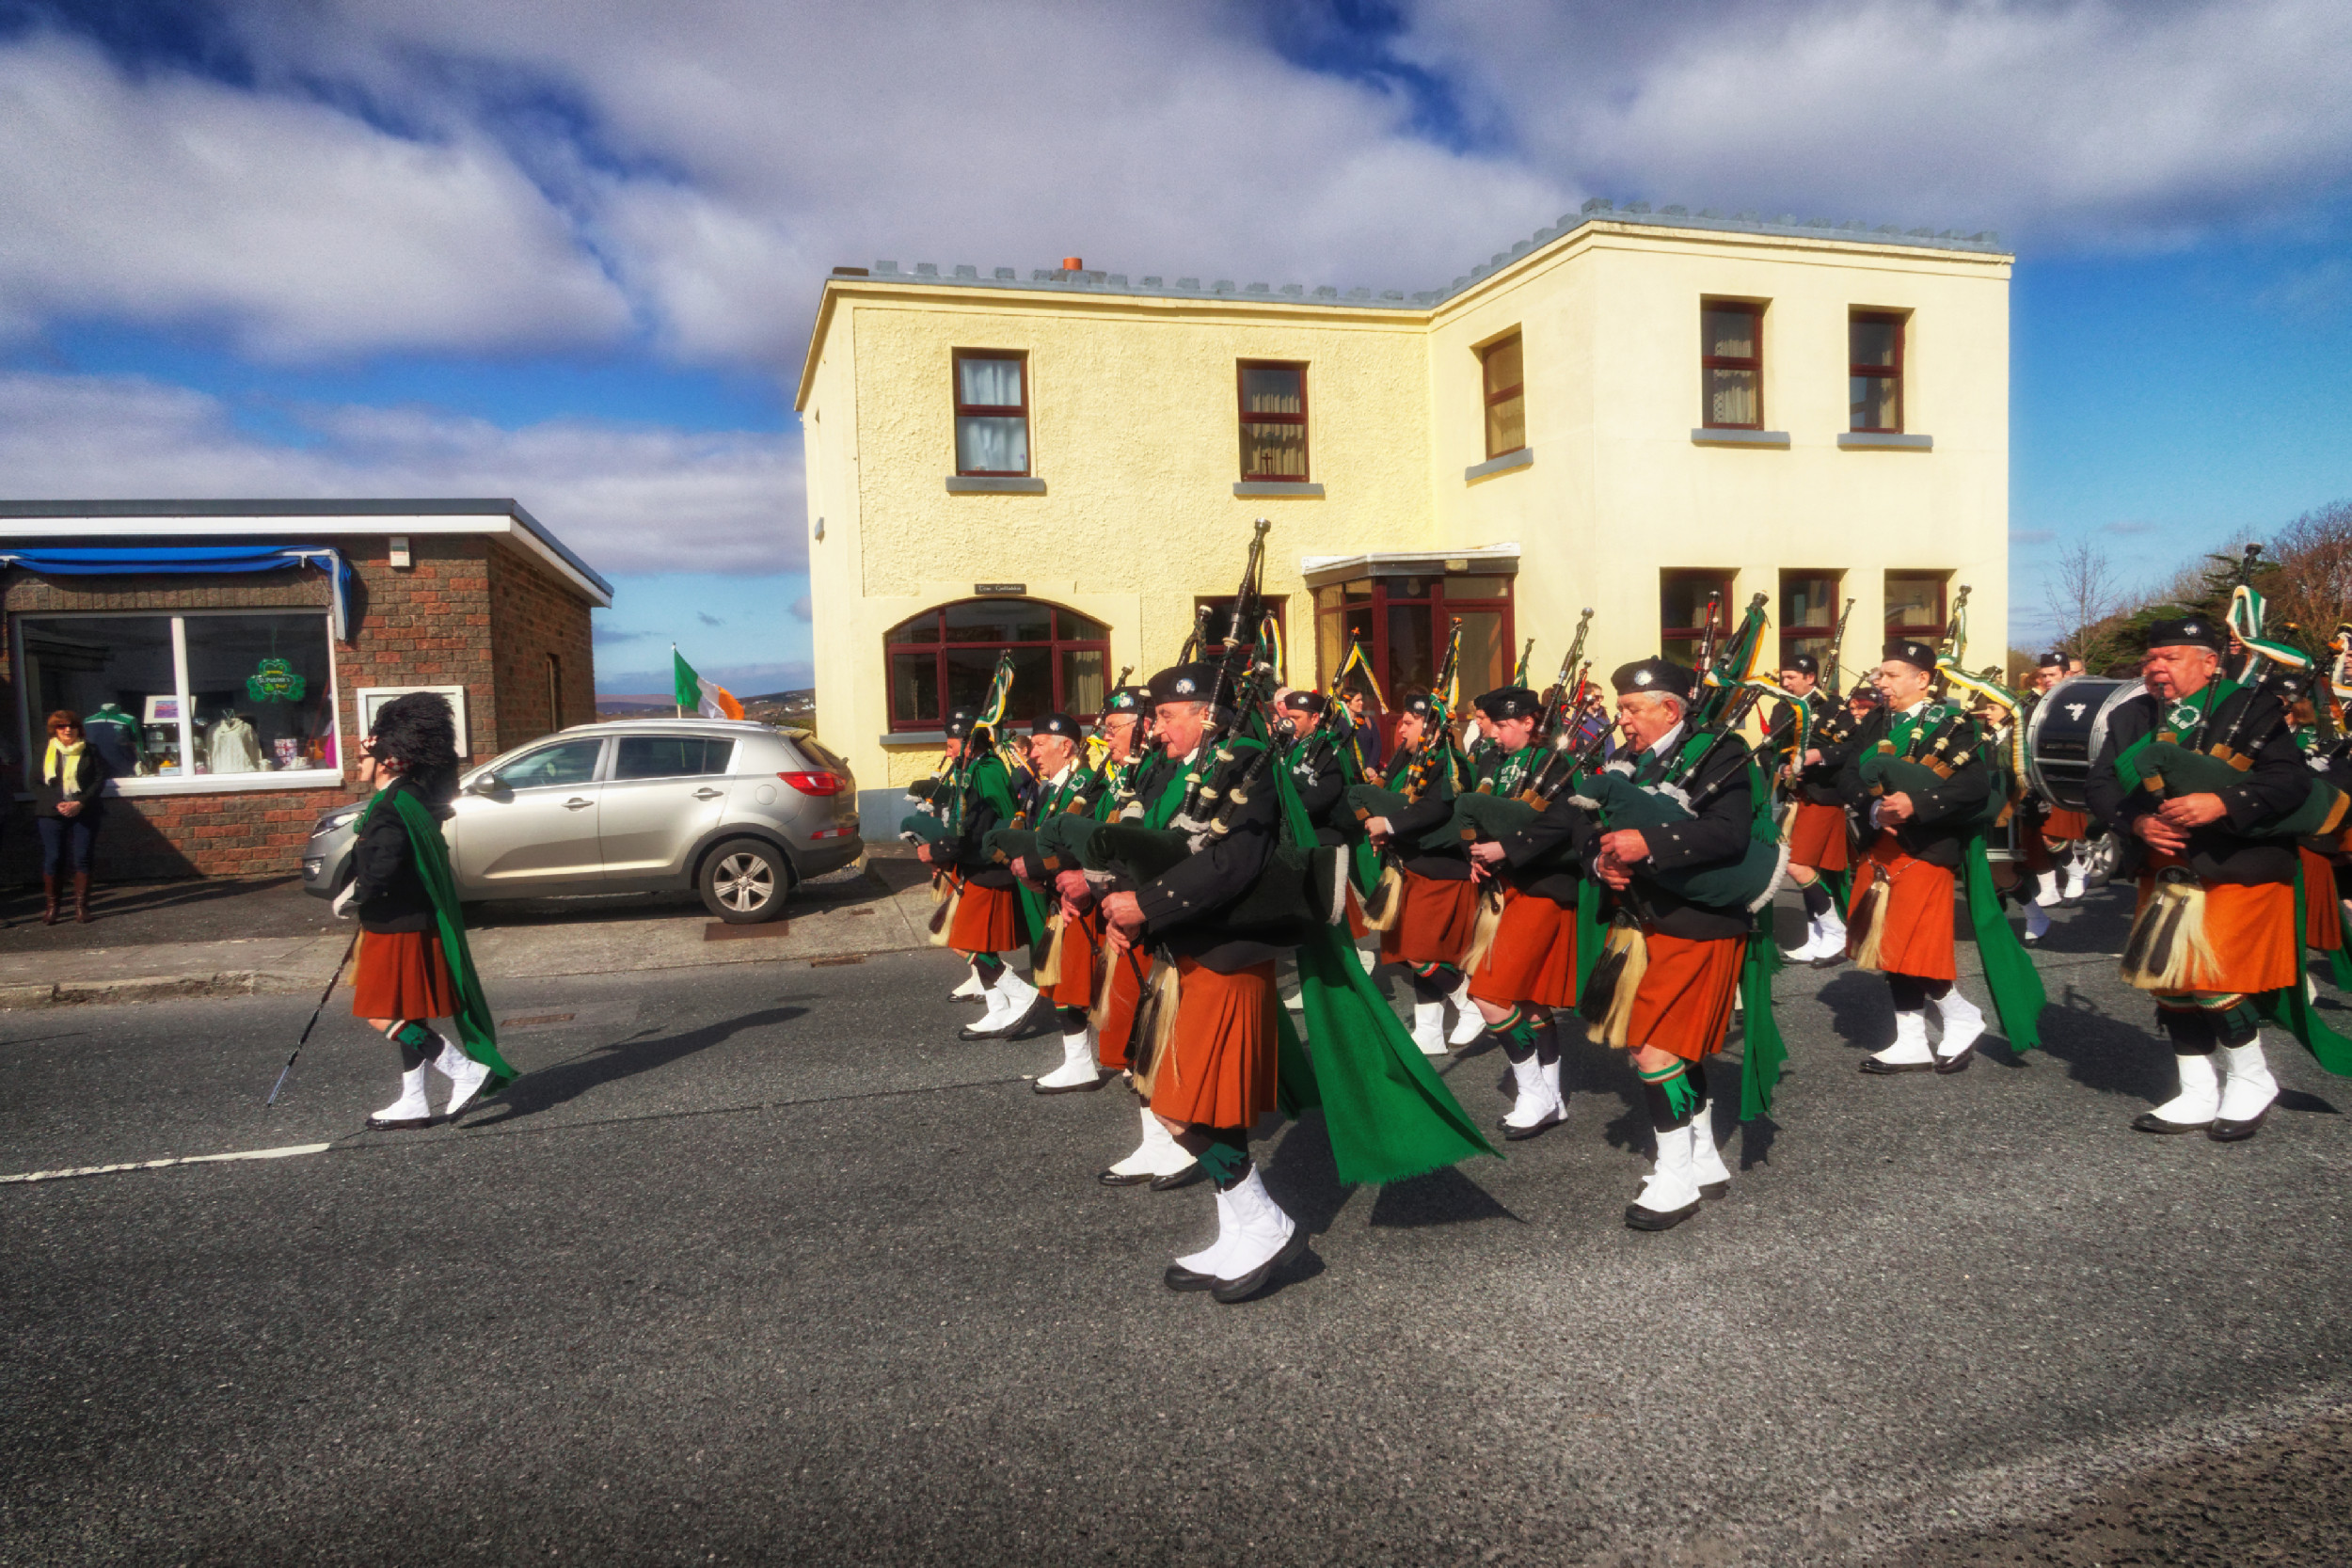 20160320130643-ie-achill-sound_parade-_DxO_13in_DxO96